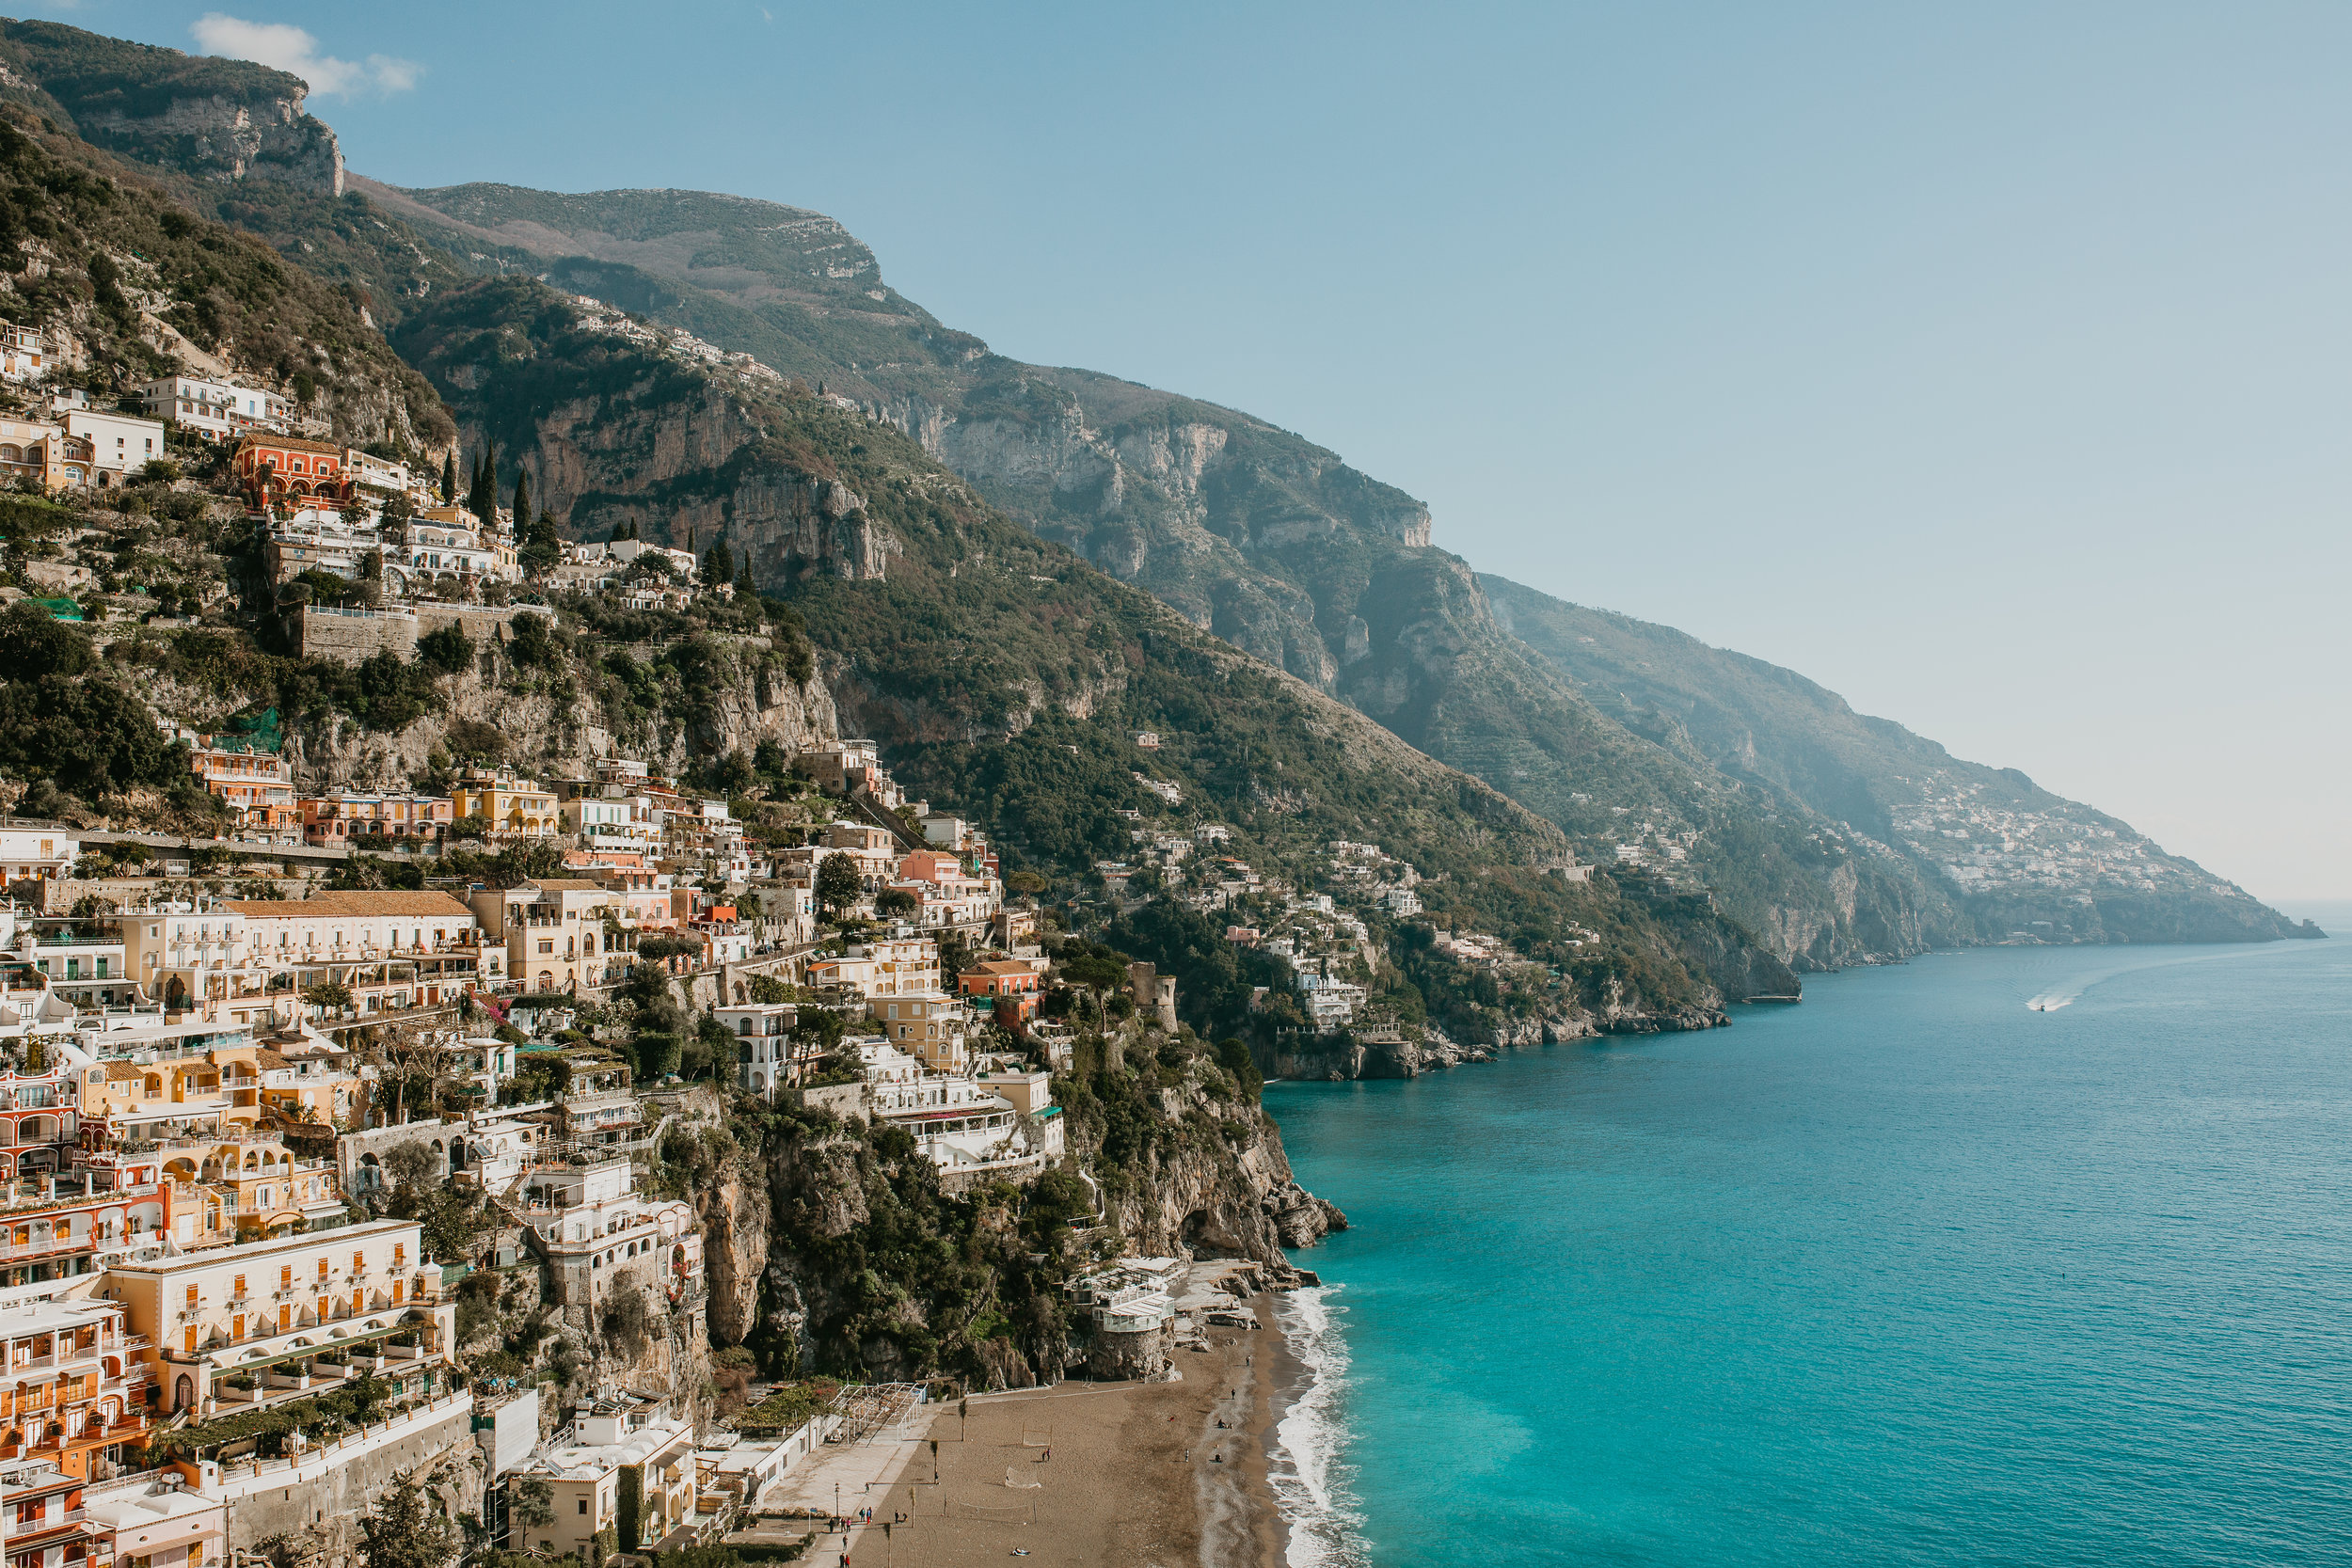 nicole-daacke-photography-destination-elopement-wedding-in-italy-florence-elopement-amalfi-coast-elopement-photographer-positano-photographer-rome-destination-wedding-photographer-italy-italian-landscapes-italy-adventure-itinerary -0309.jpg